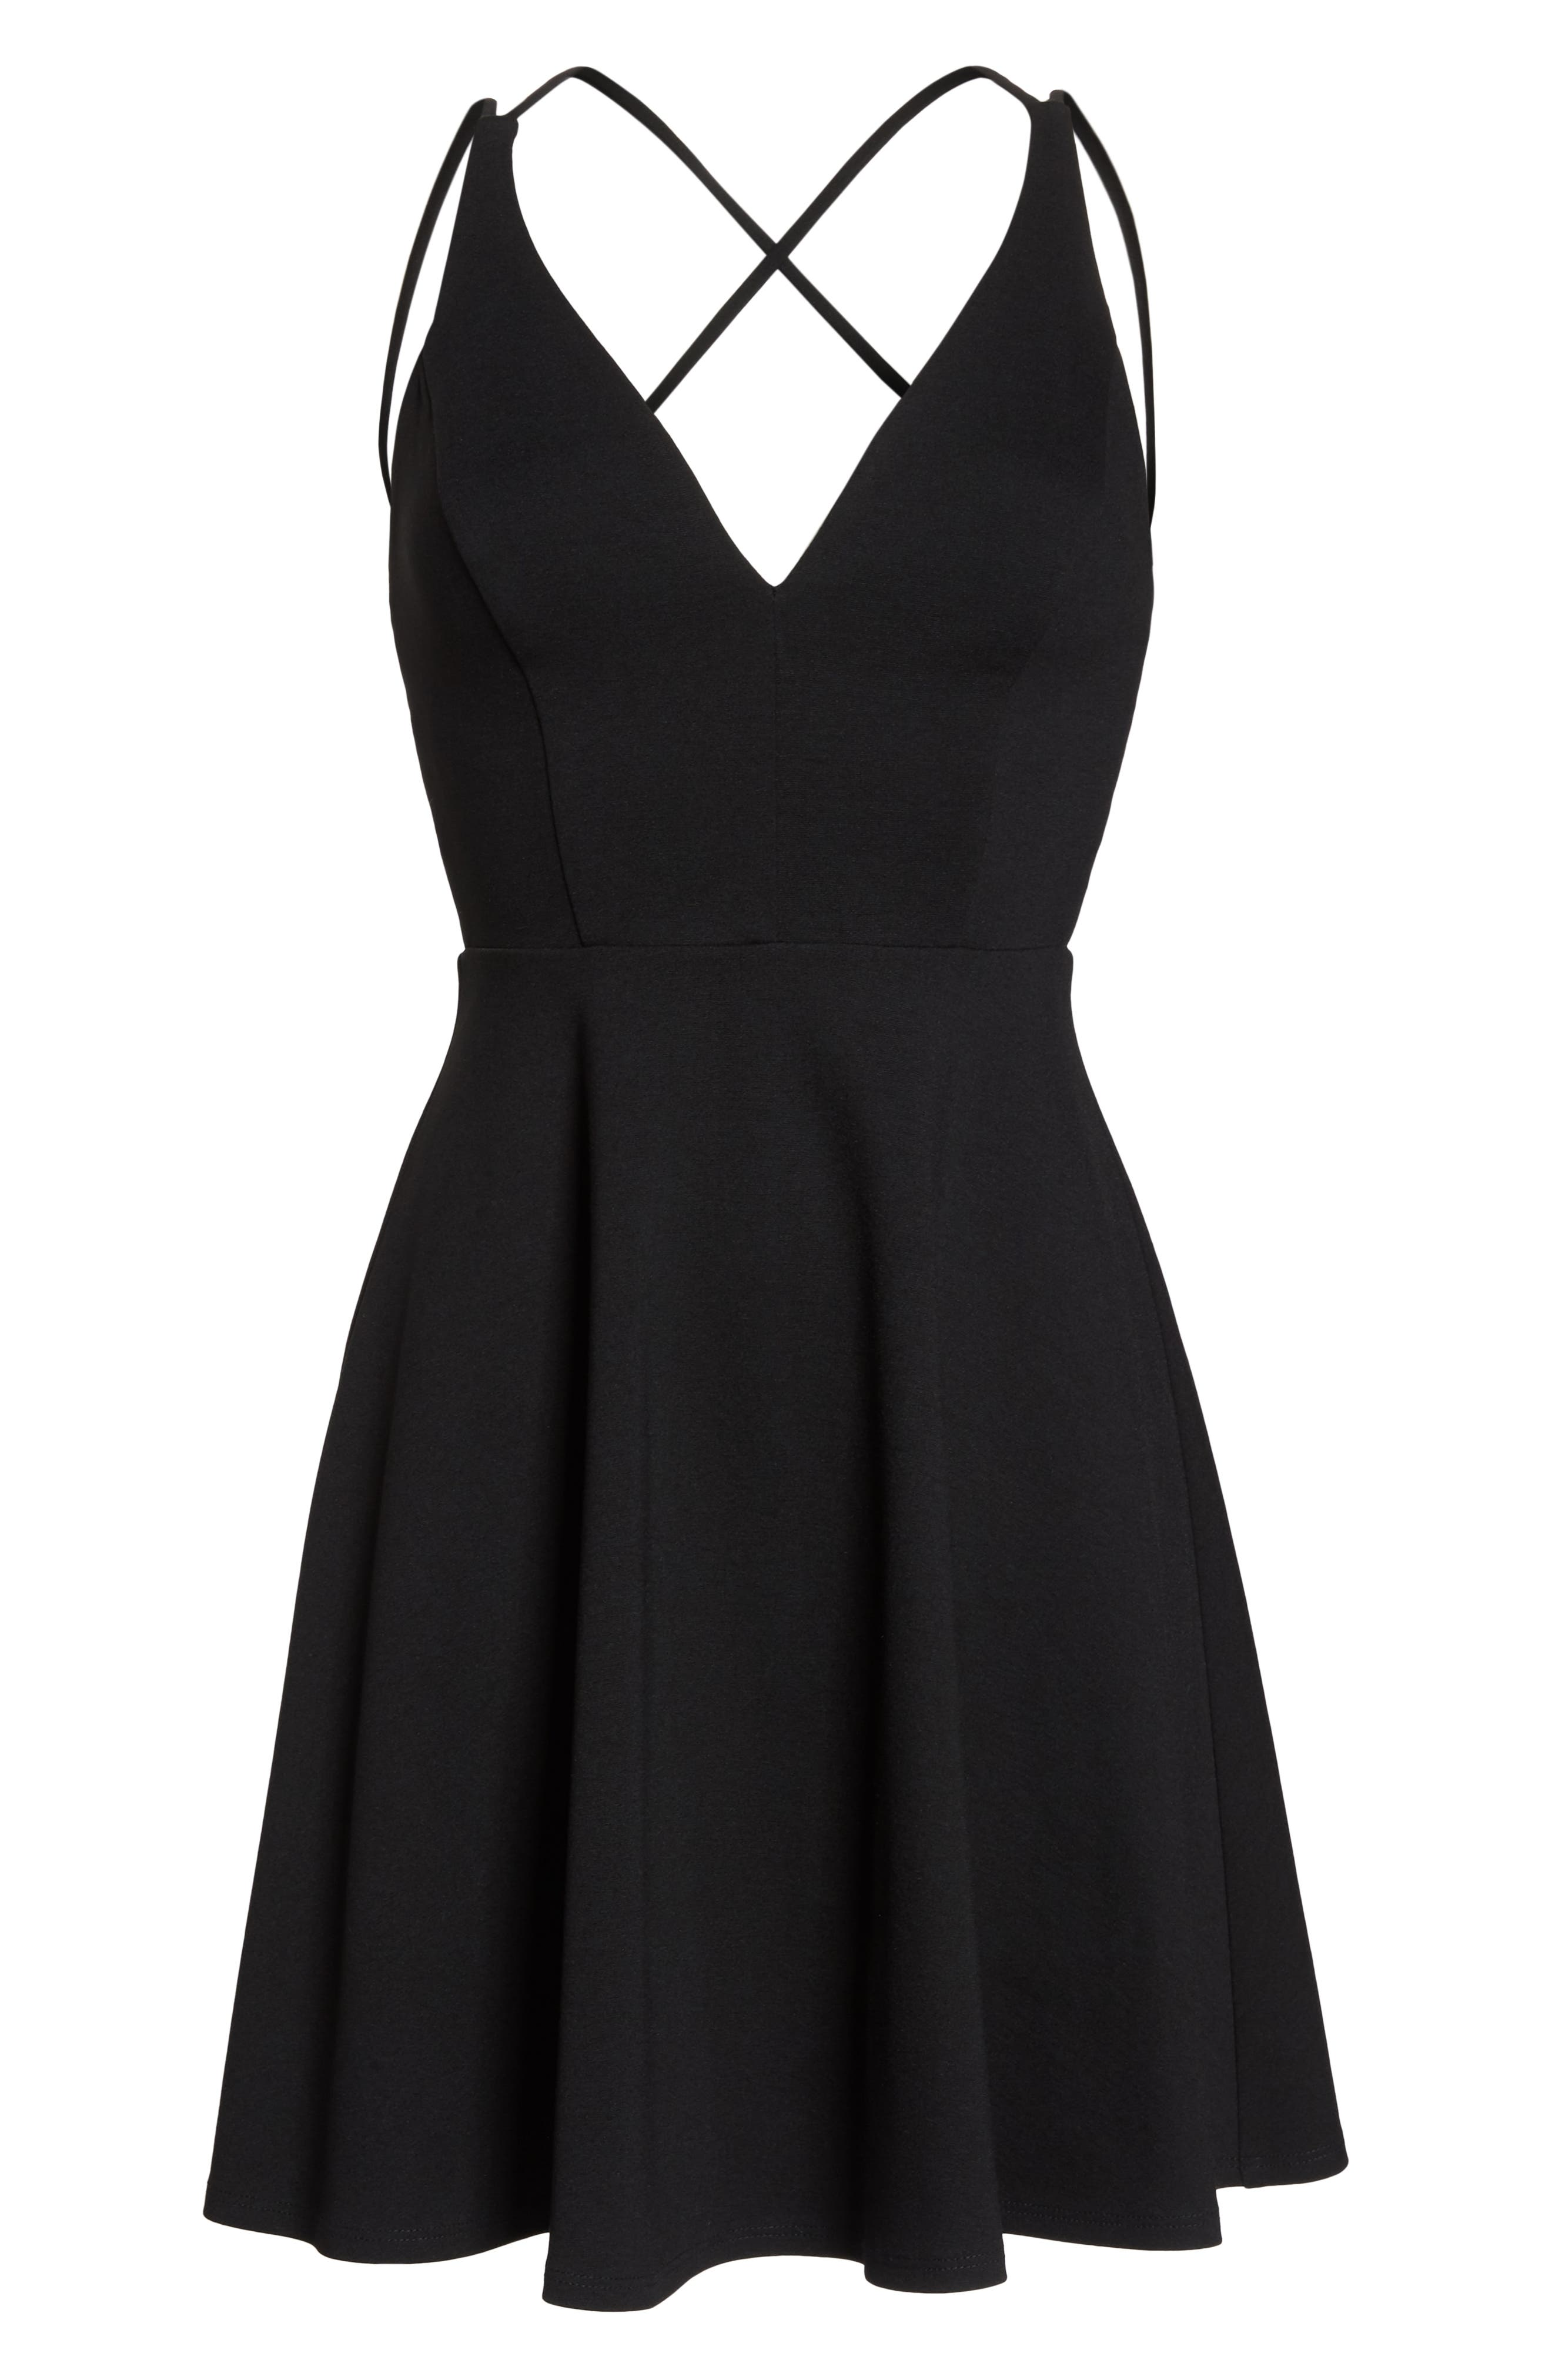 LULUS, Believe in Love Strappy Back Skater Dress, Alternate thumbnail 6, color, BLACK